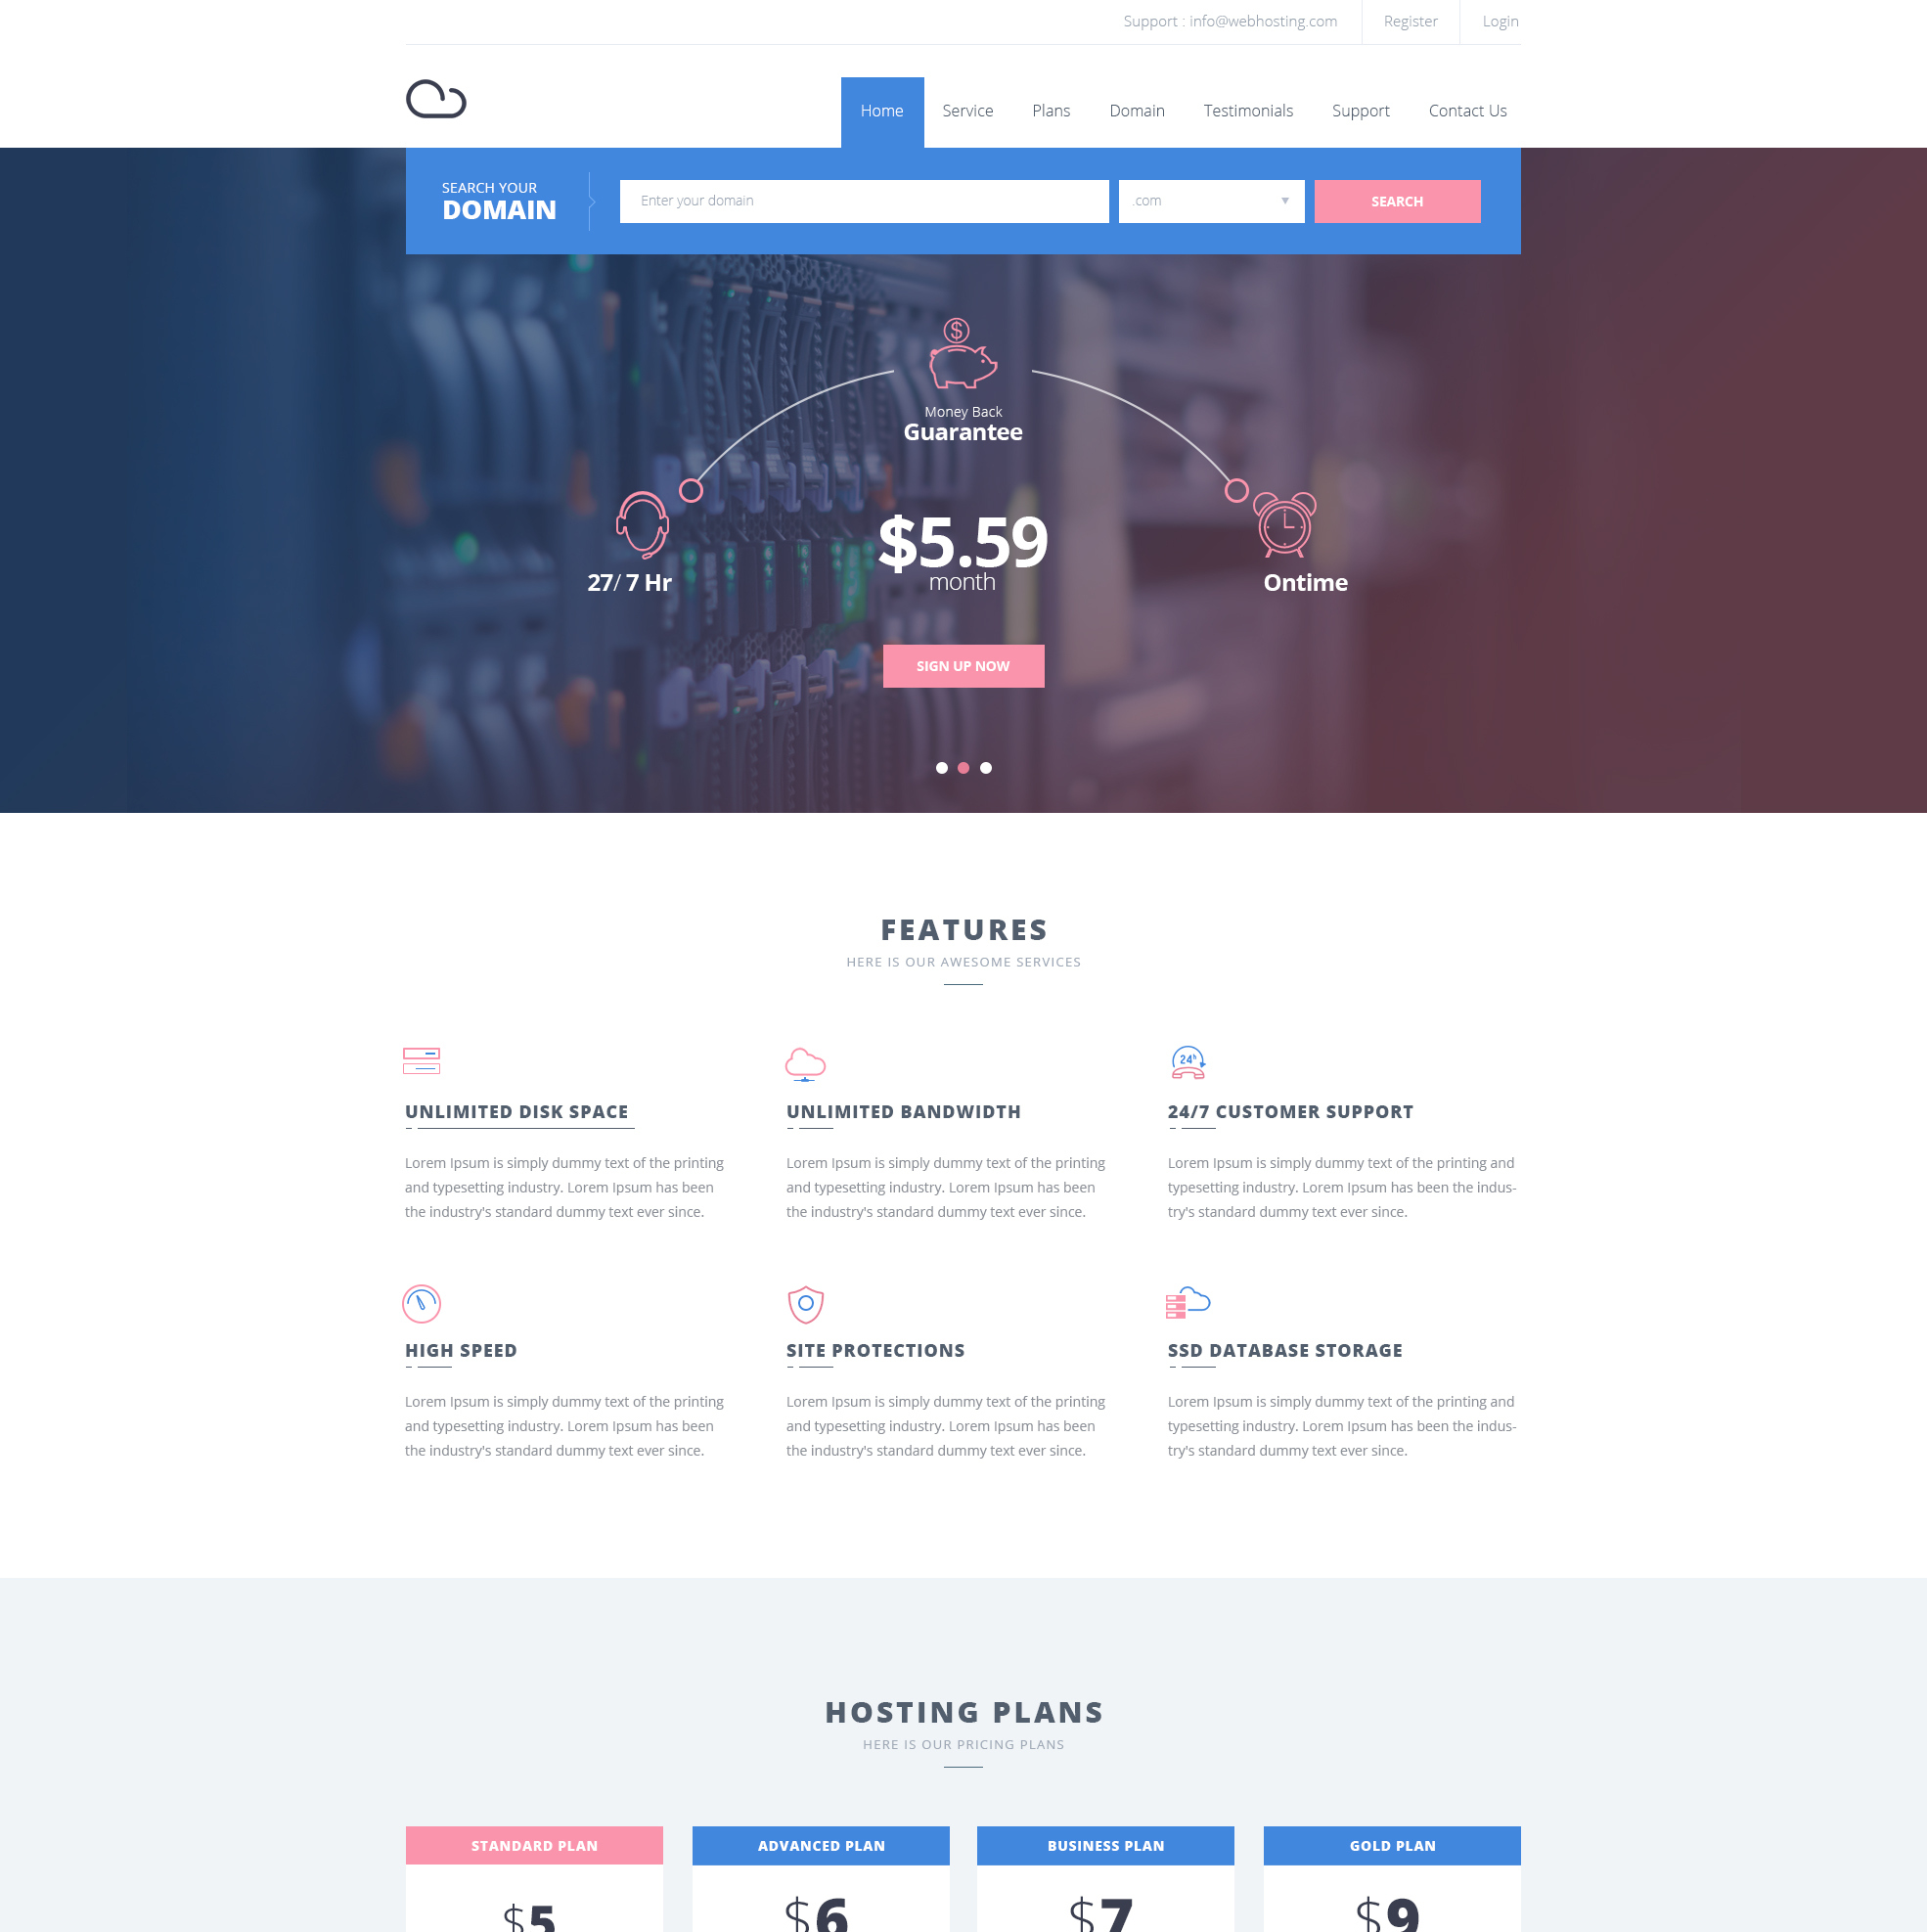 Free hosting website template freebies fribly march 16 2017 comments 0 views 1335 freebies maxwellsz